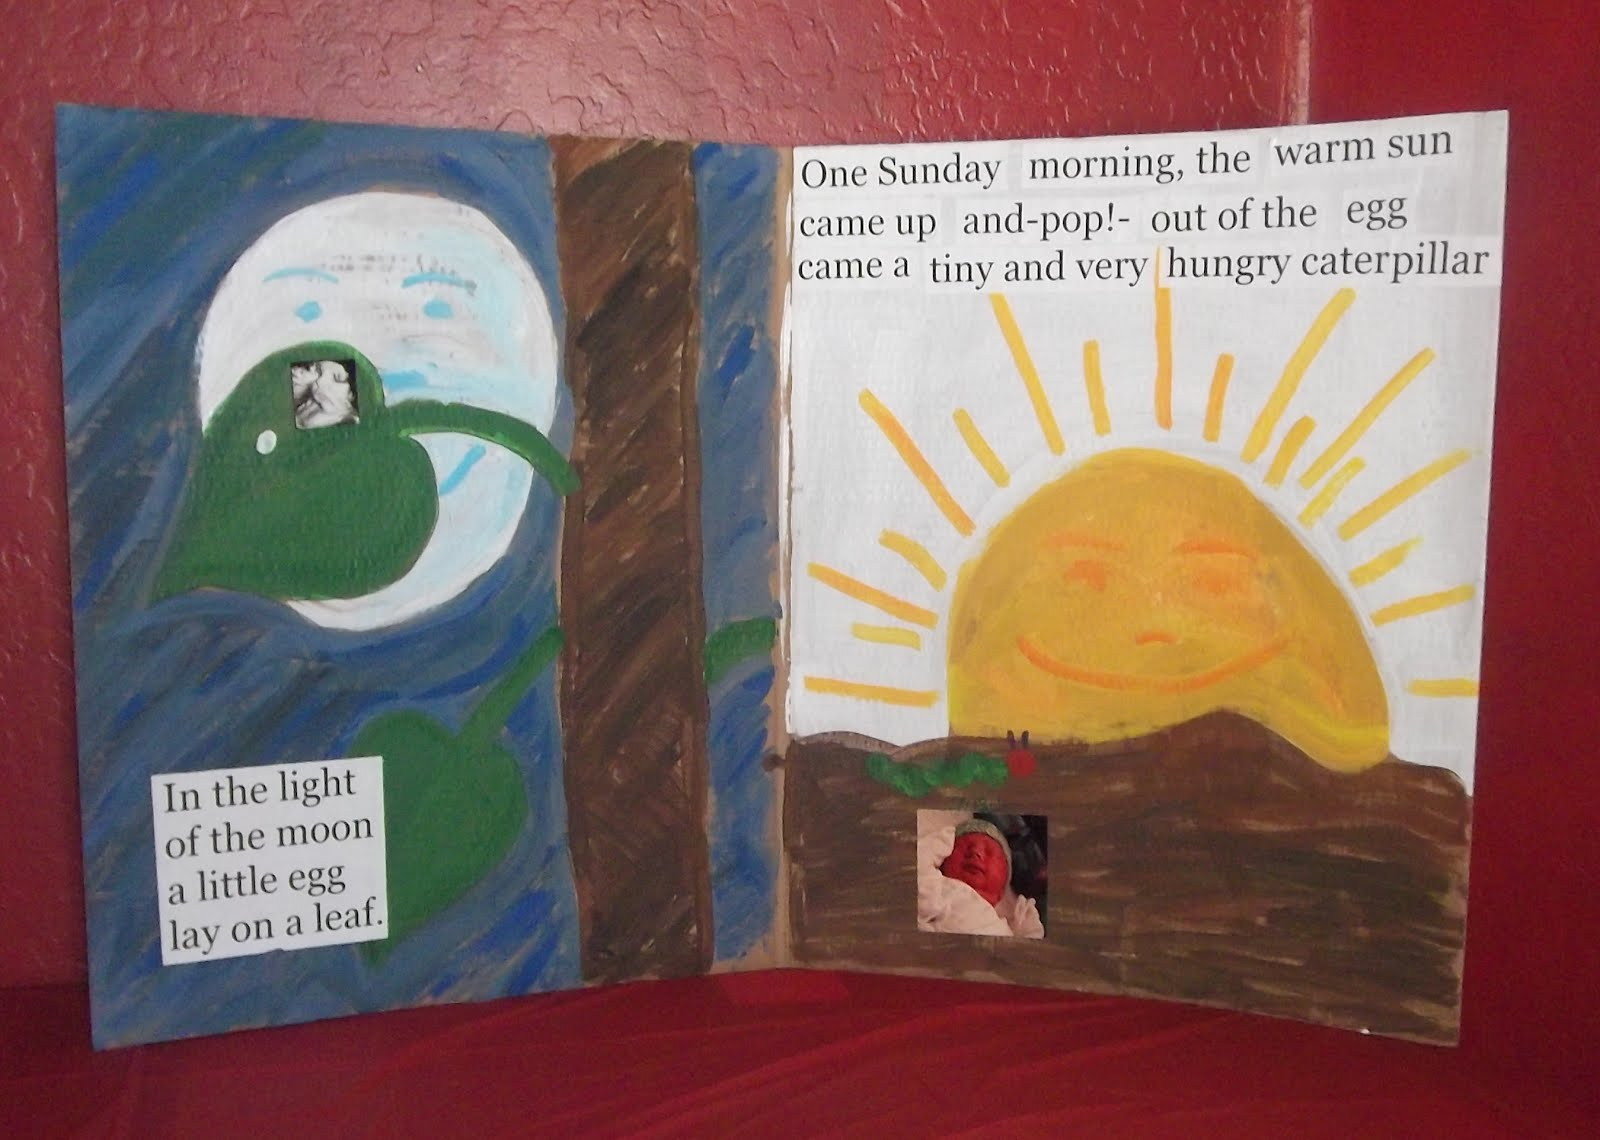 The Very Hungry Caterpillar Pages recreated by Monica Jamer